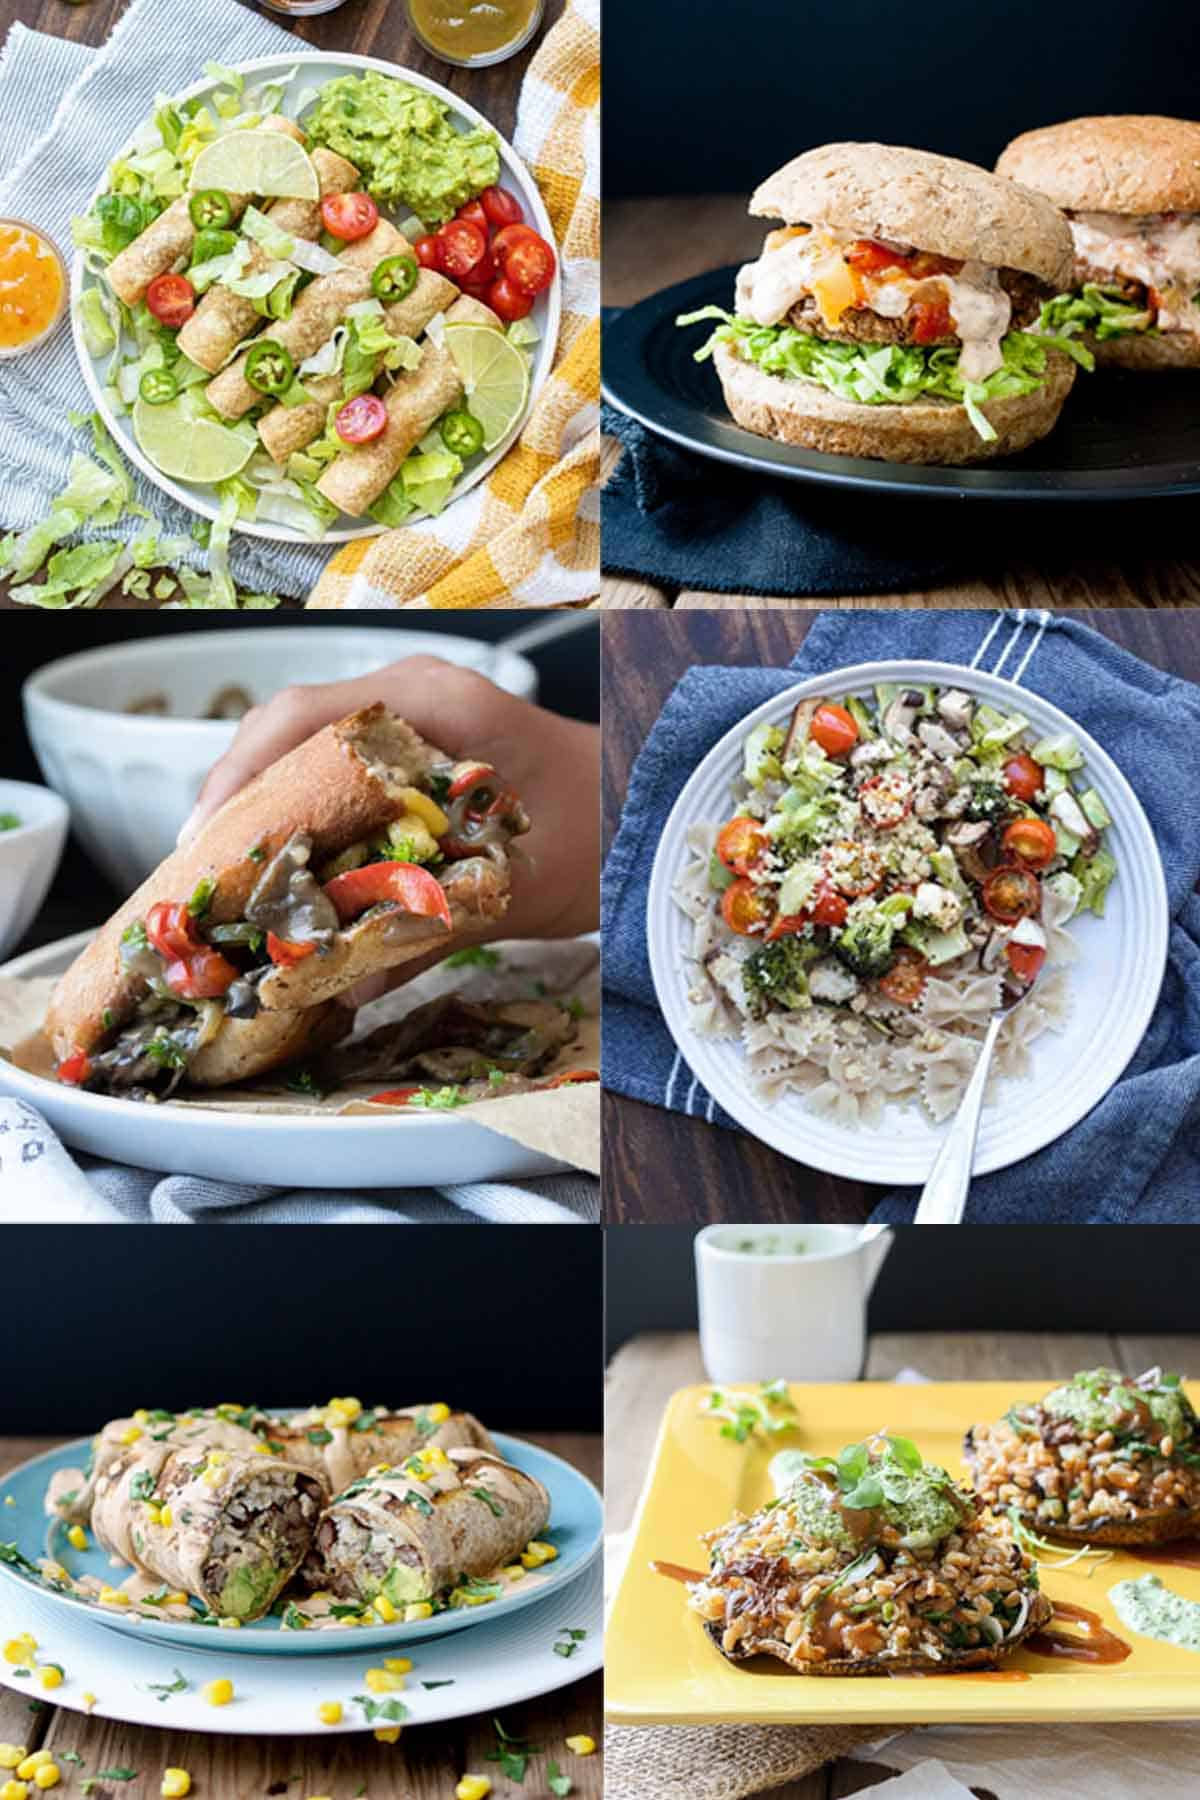 A collage of taquitos, burgers, sandwiches, pasta, burritos and stuffed mushrooms